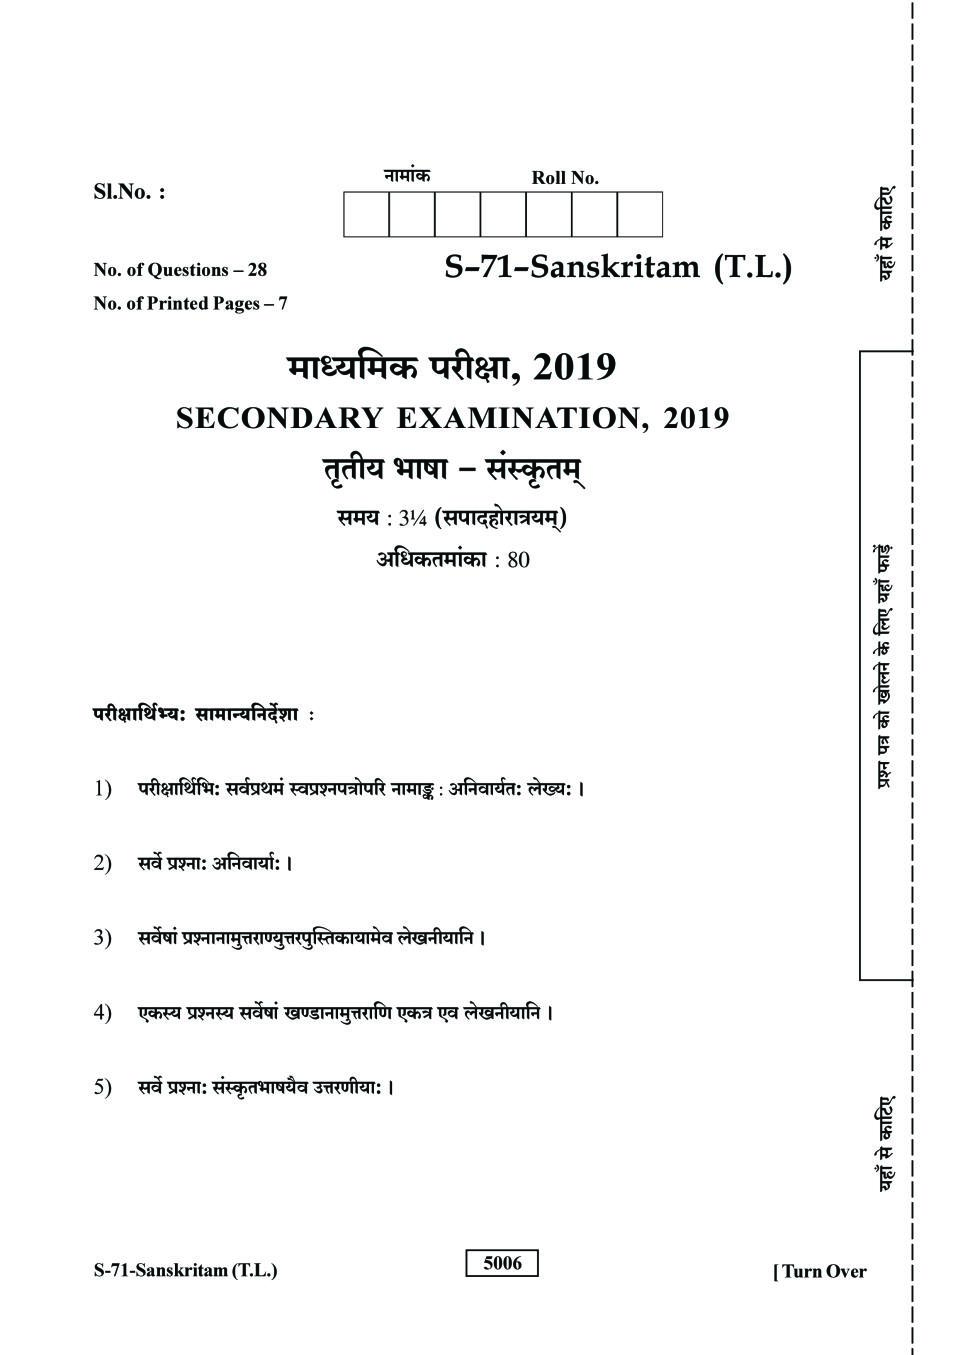 Rajasthan Board Secondary Sanskrit (TL) Question Paper